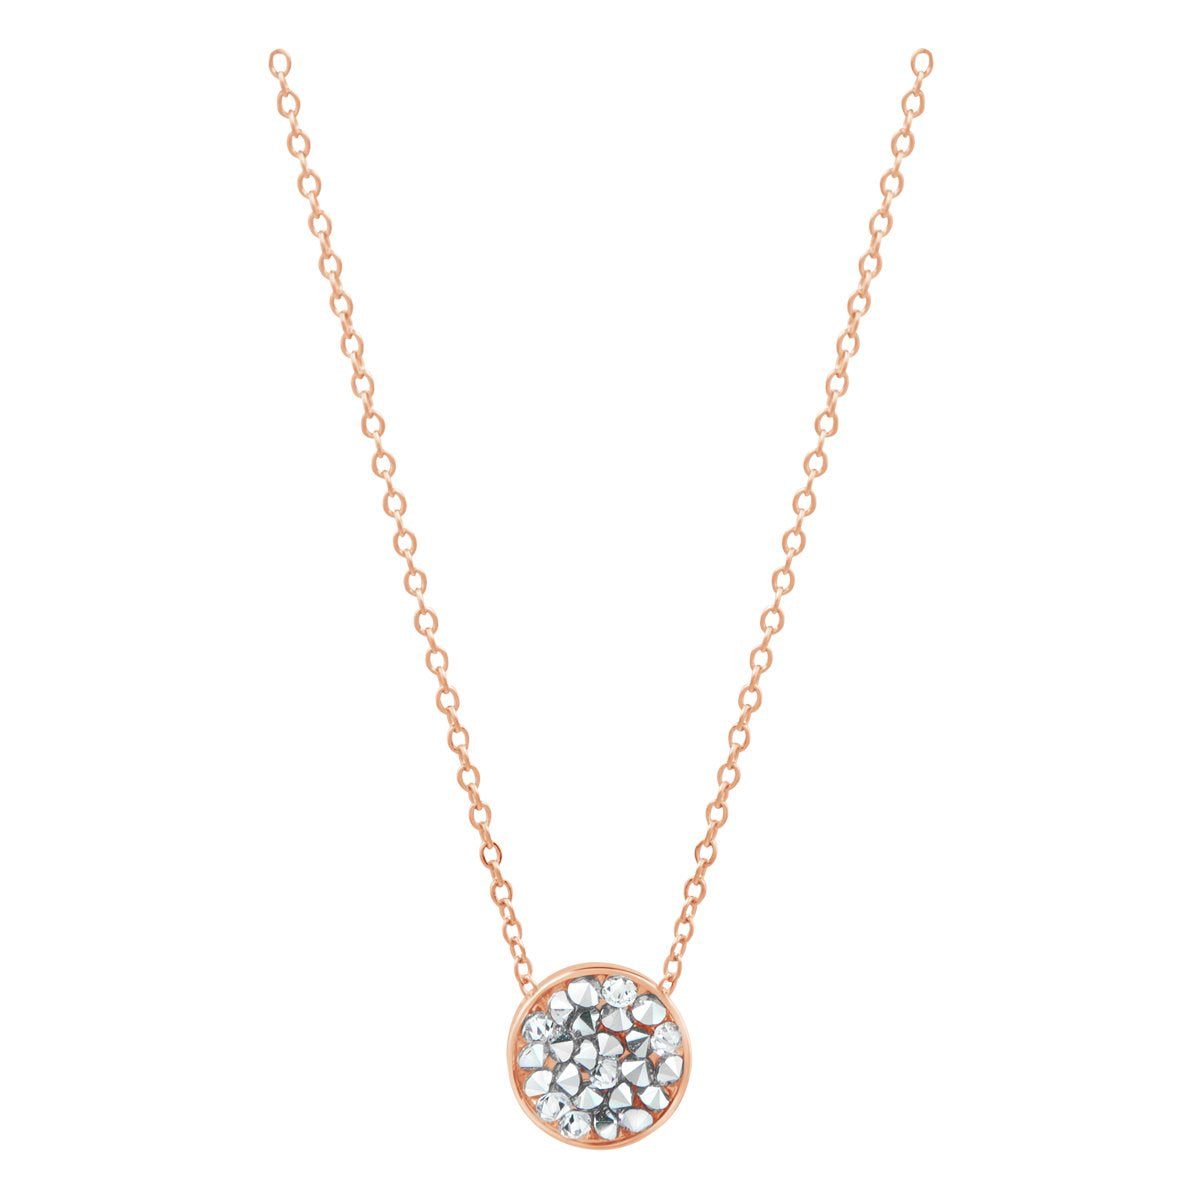 DORADO PETITE SLIDER NECKLACE ROSE GOLD CAL